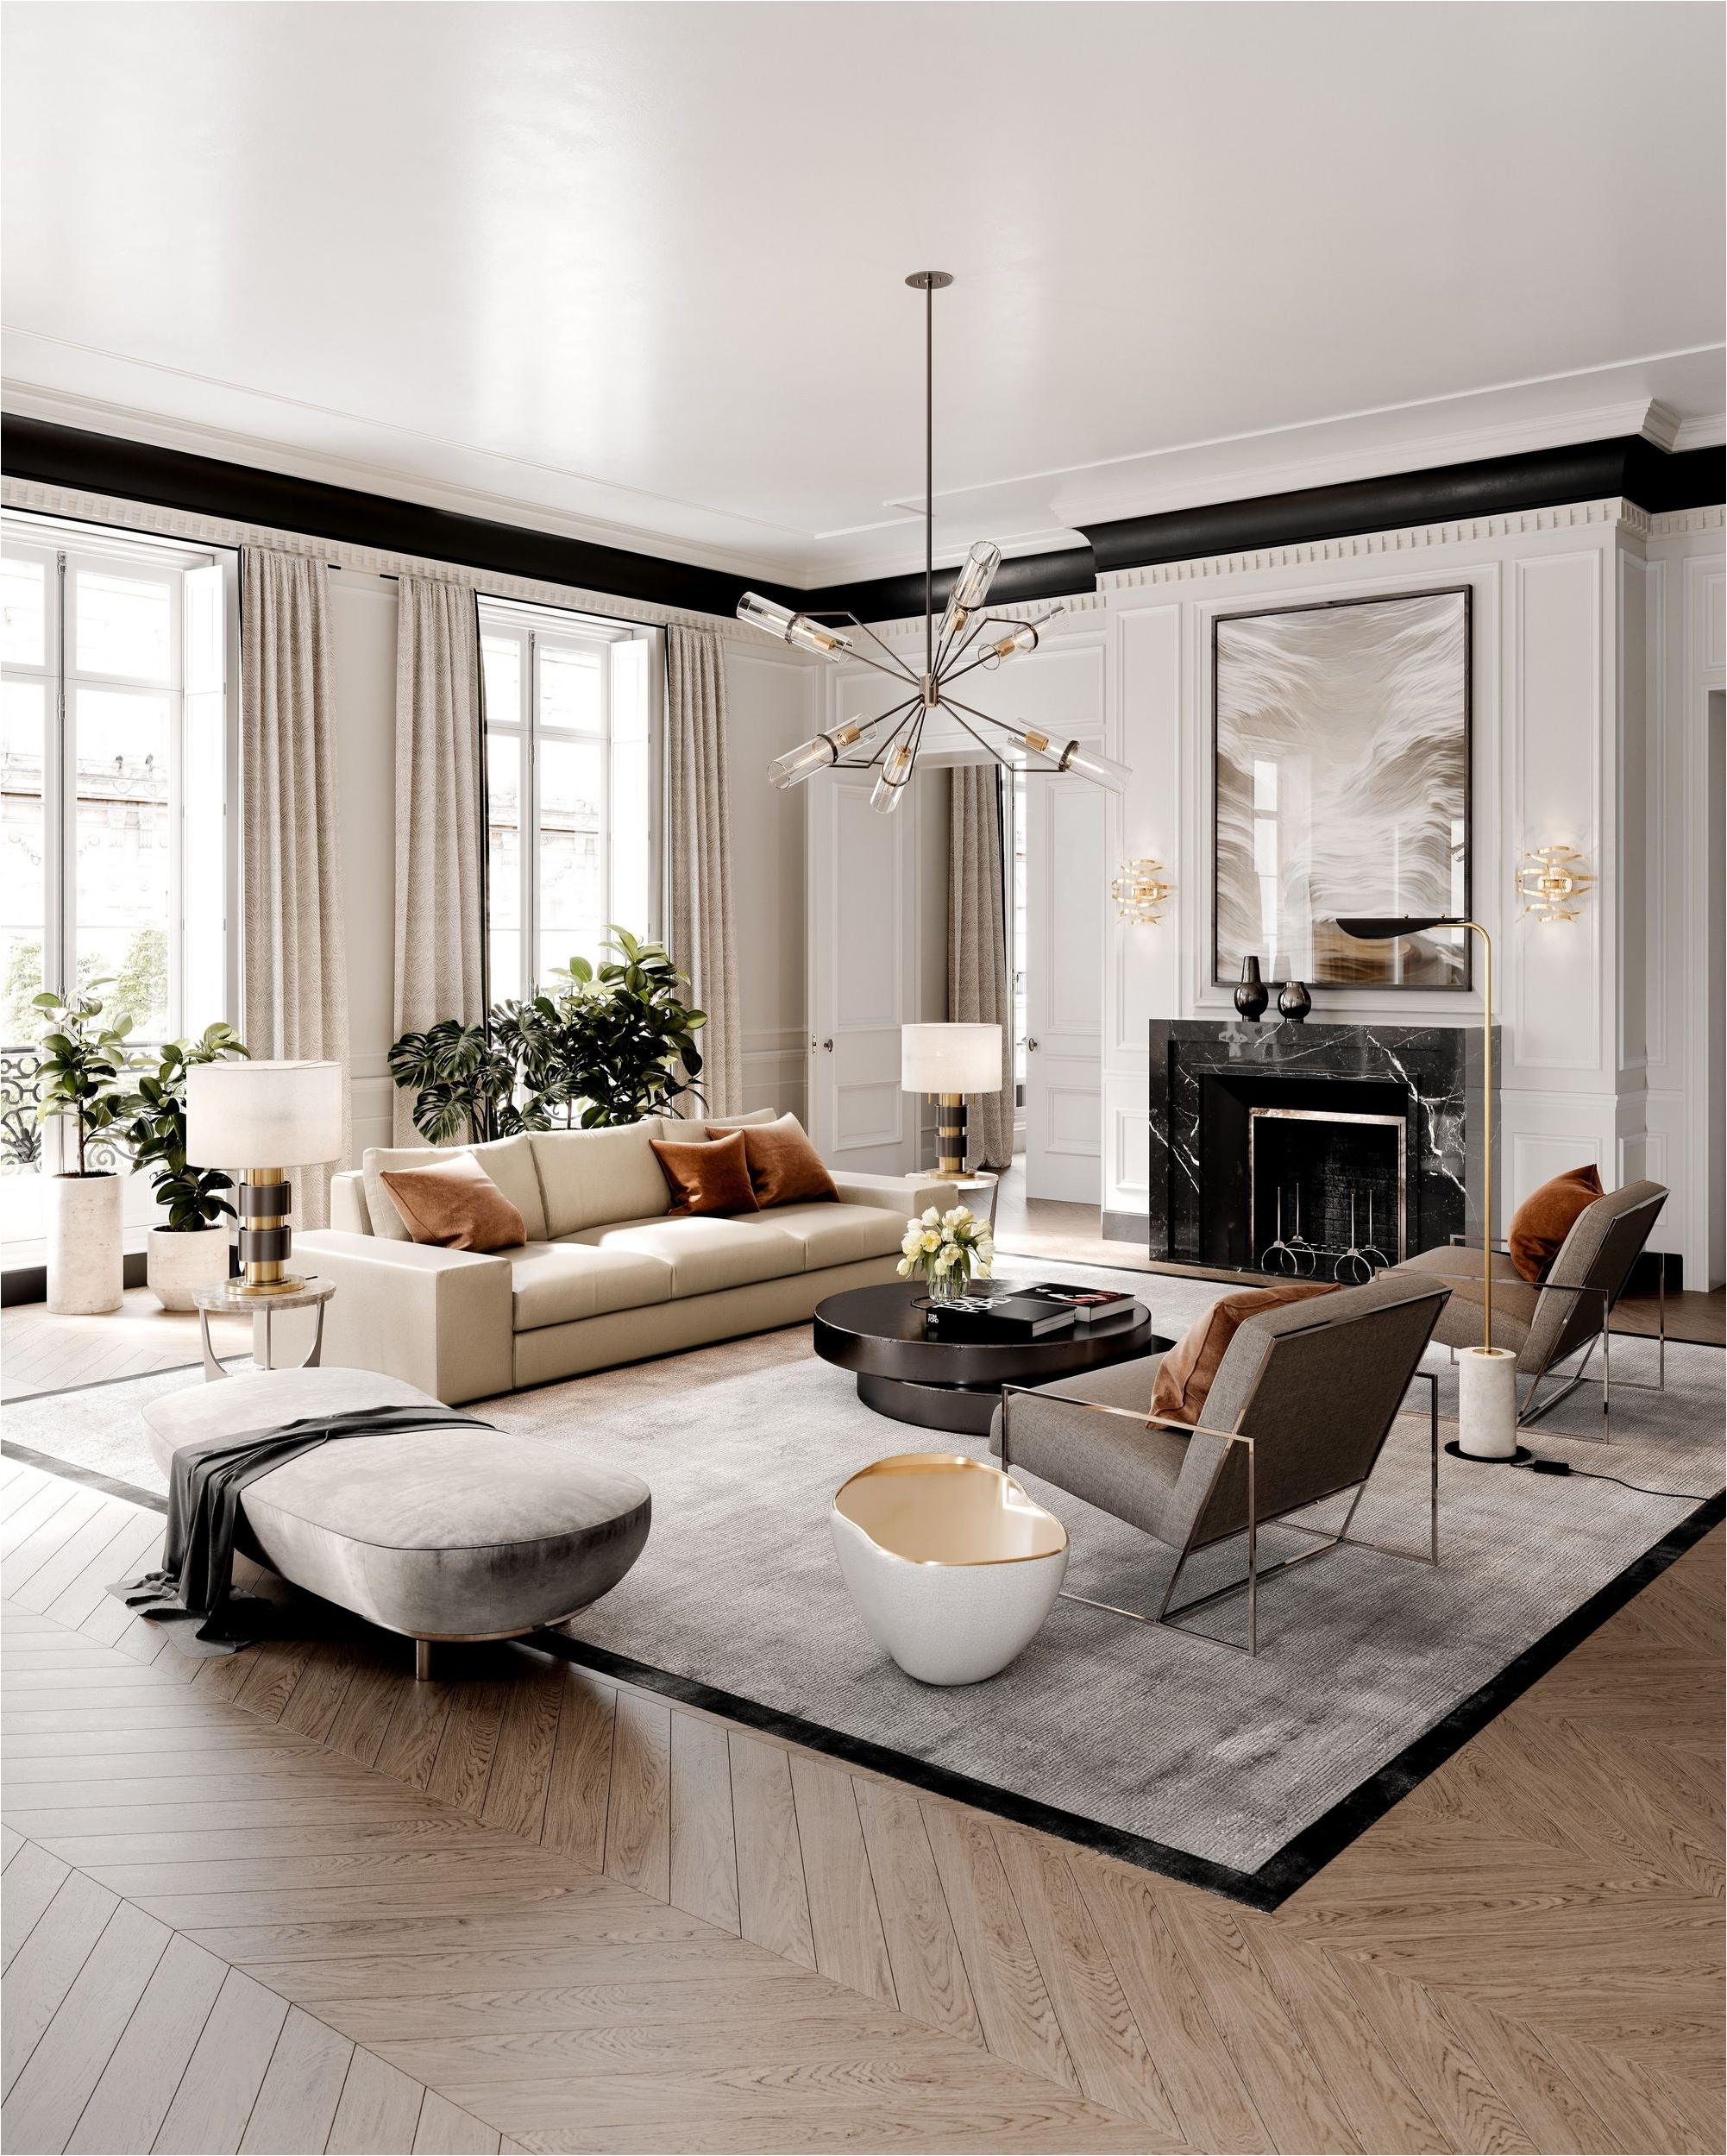 Classic European Style for White-style Apartment with Refreshing Green Accents